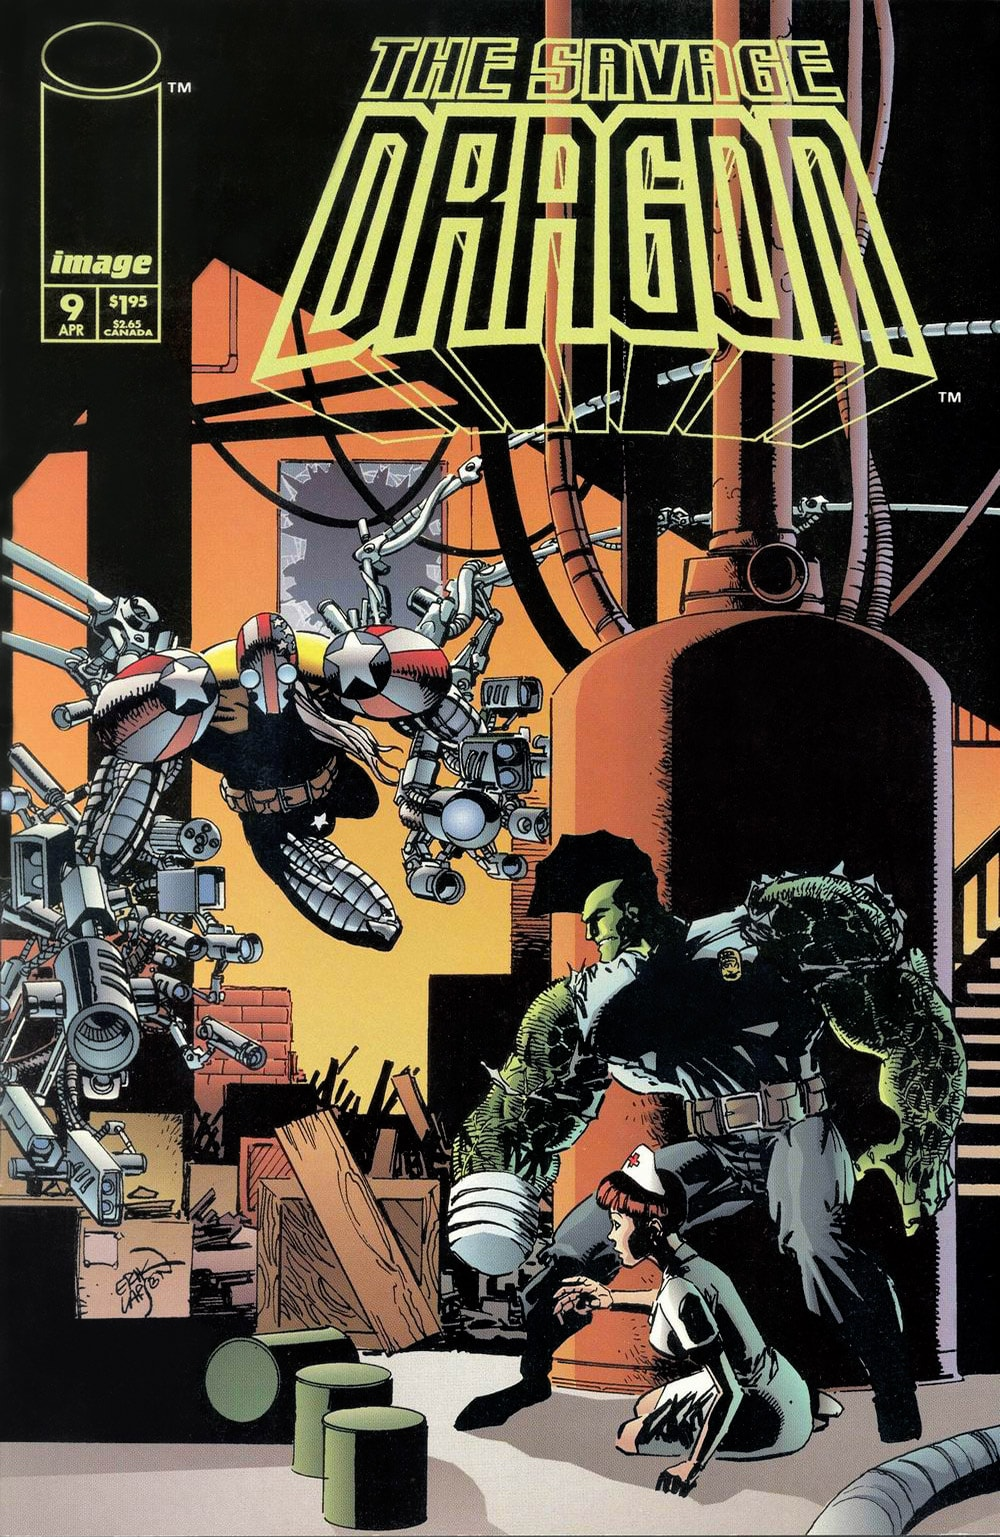 Cover Savage Dragon Vol.2 #9